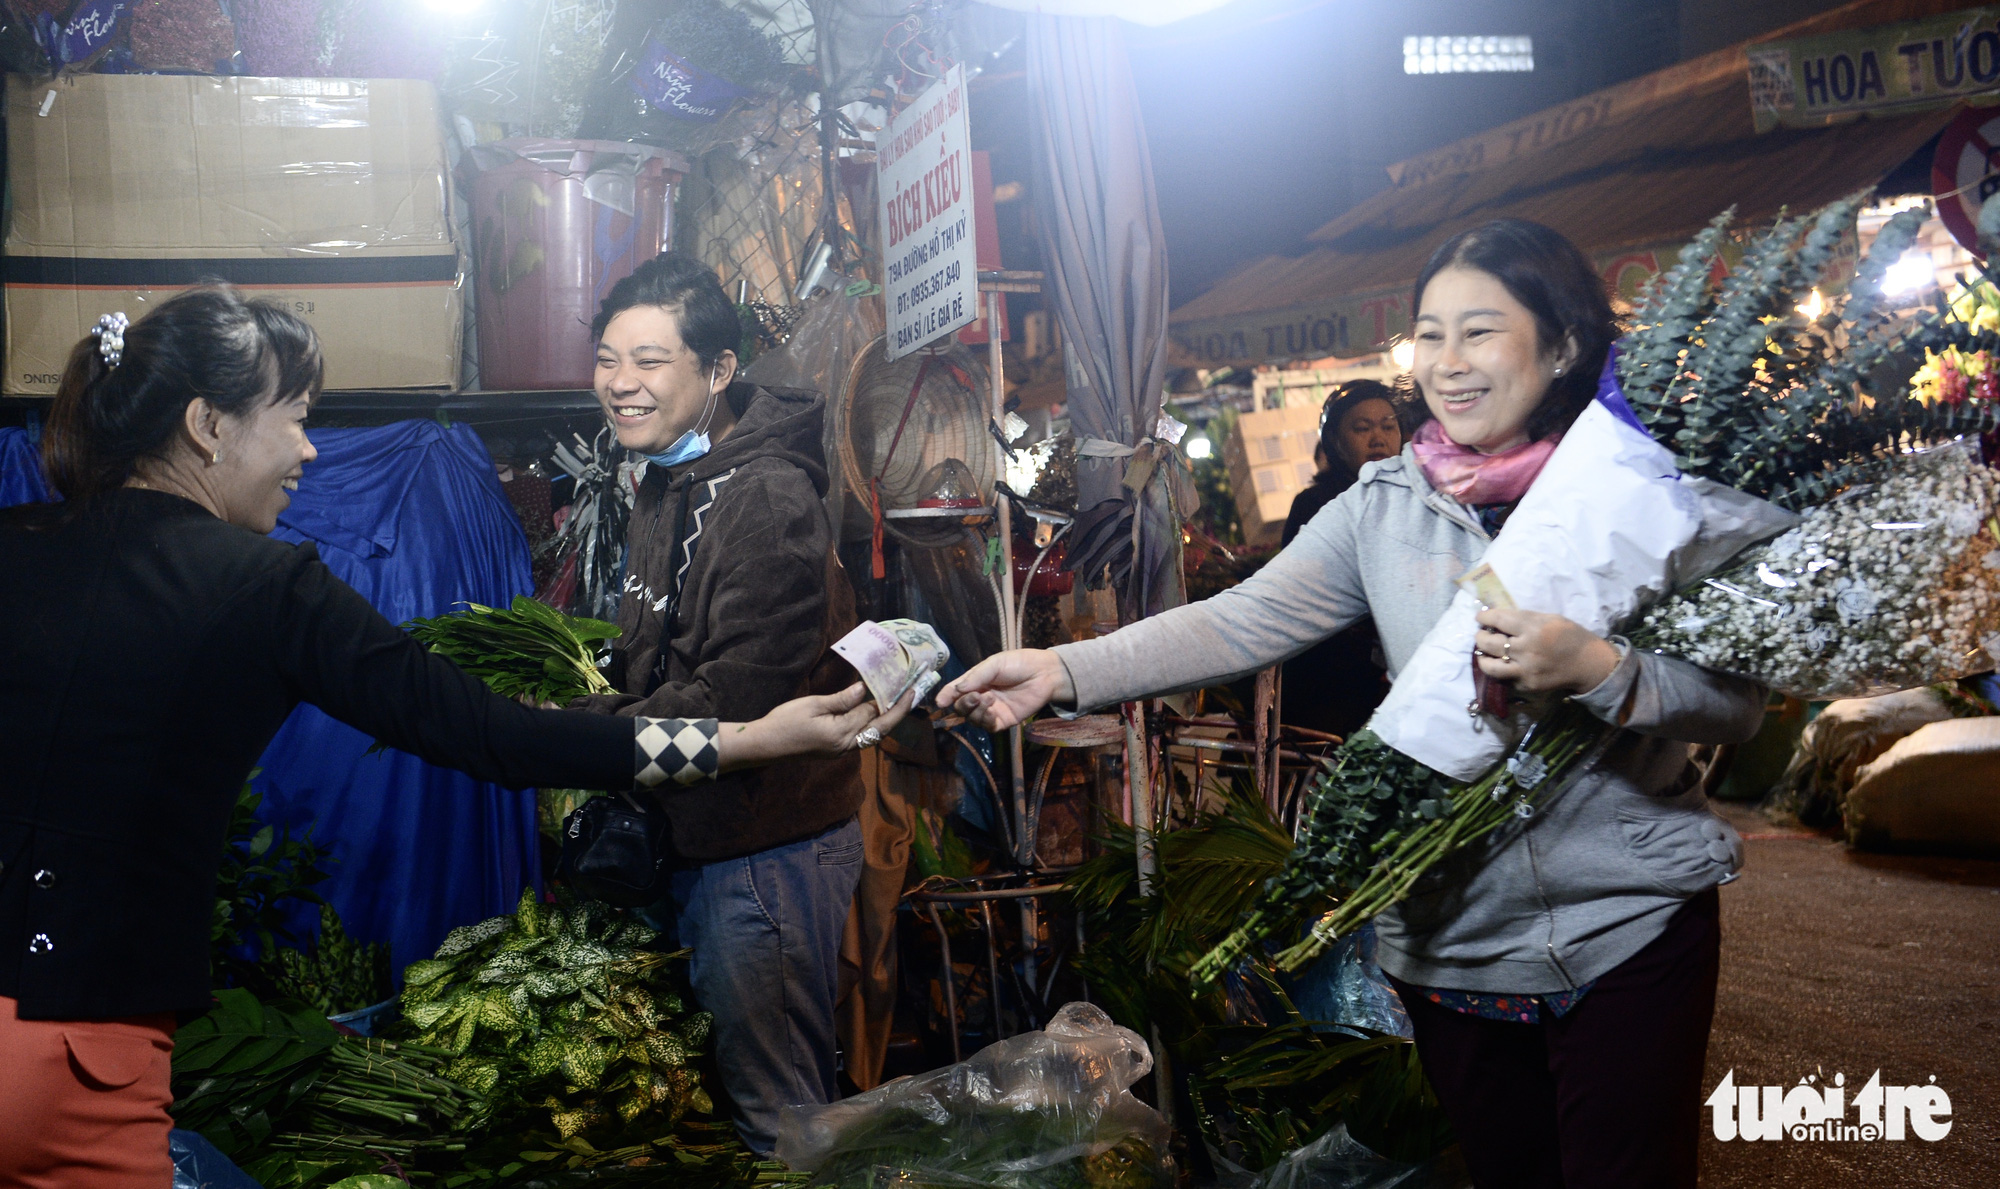 A woman buys flowers at a market in the early morning in Ho Chi Minh City. Photo: Tu Trung / Tuoi Tre